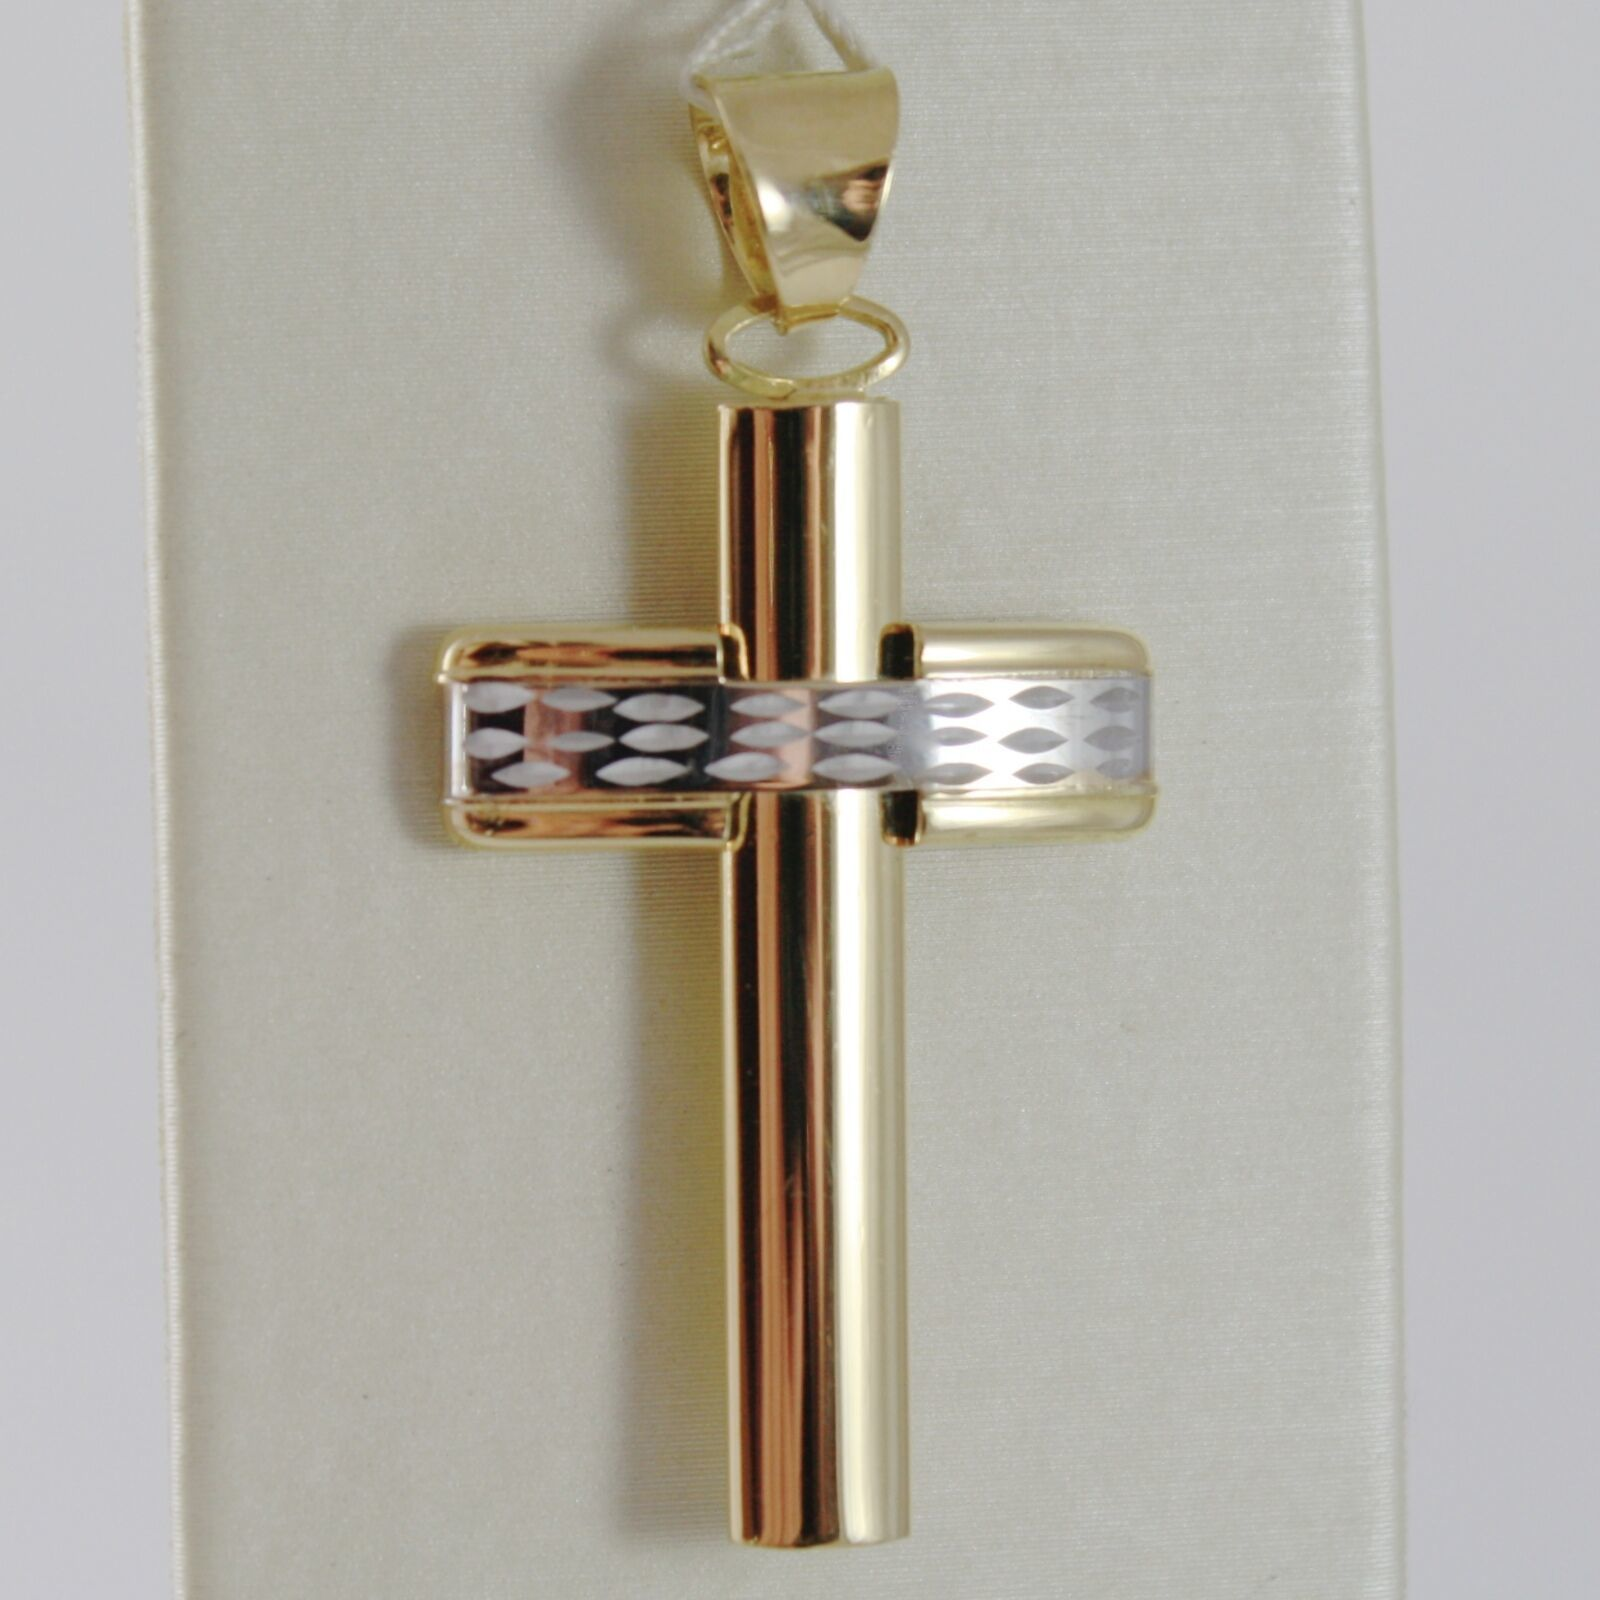 18K YELLOW WHITE GOLD CROSS SMOOTH STYLIZED FINELY WORKED CURVED MADE IN ITALY